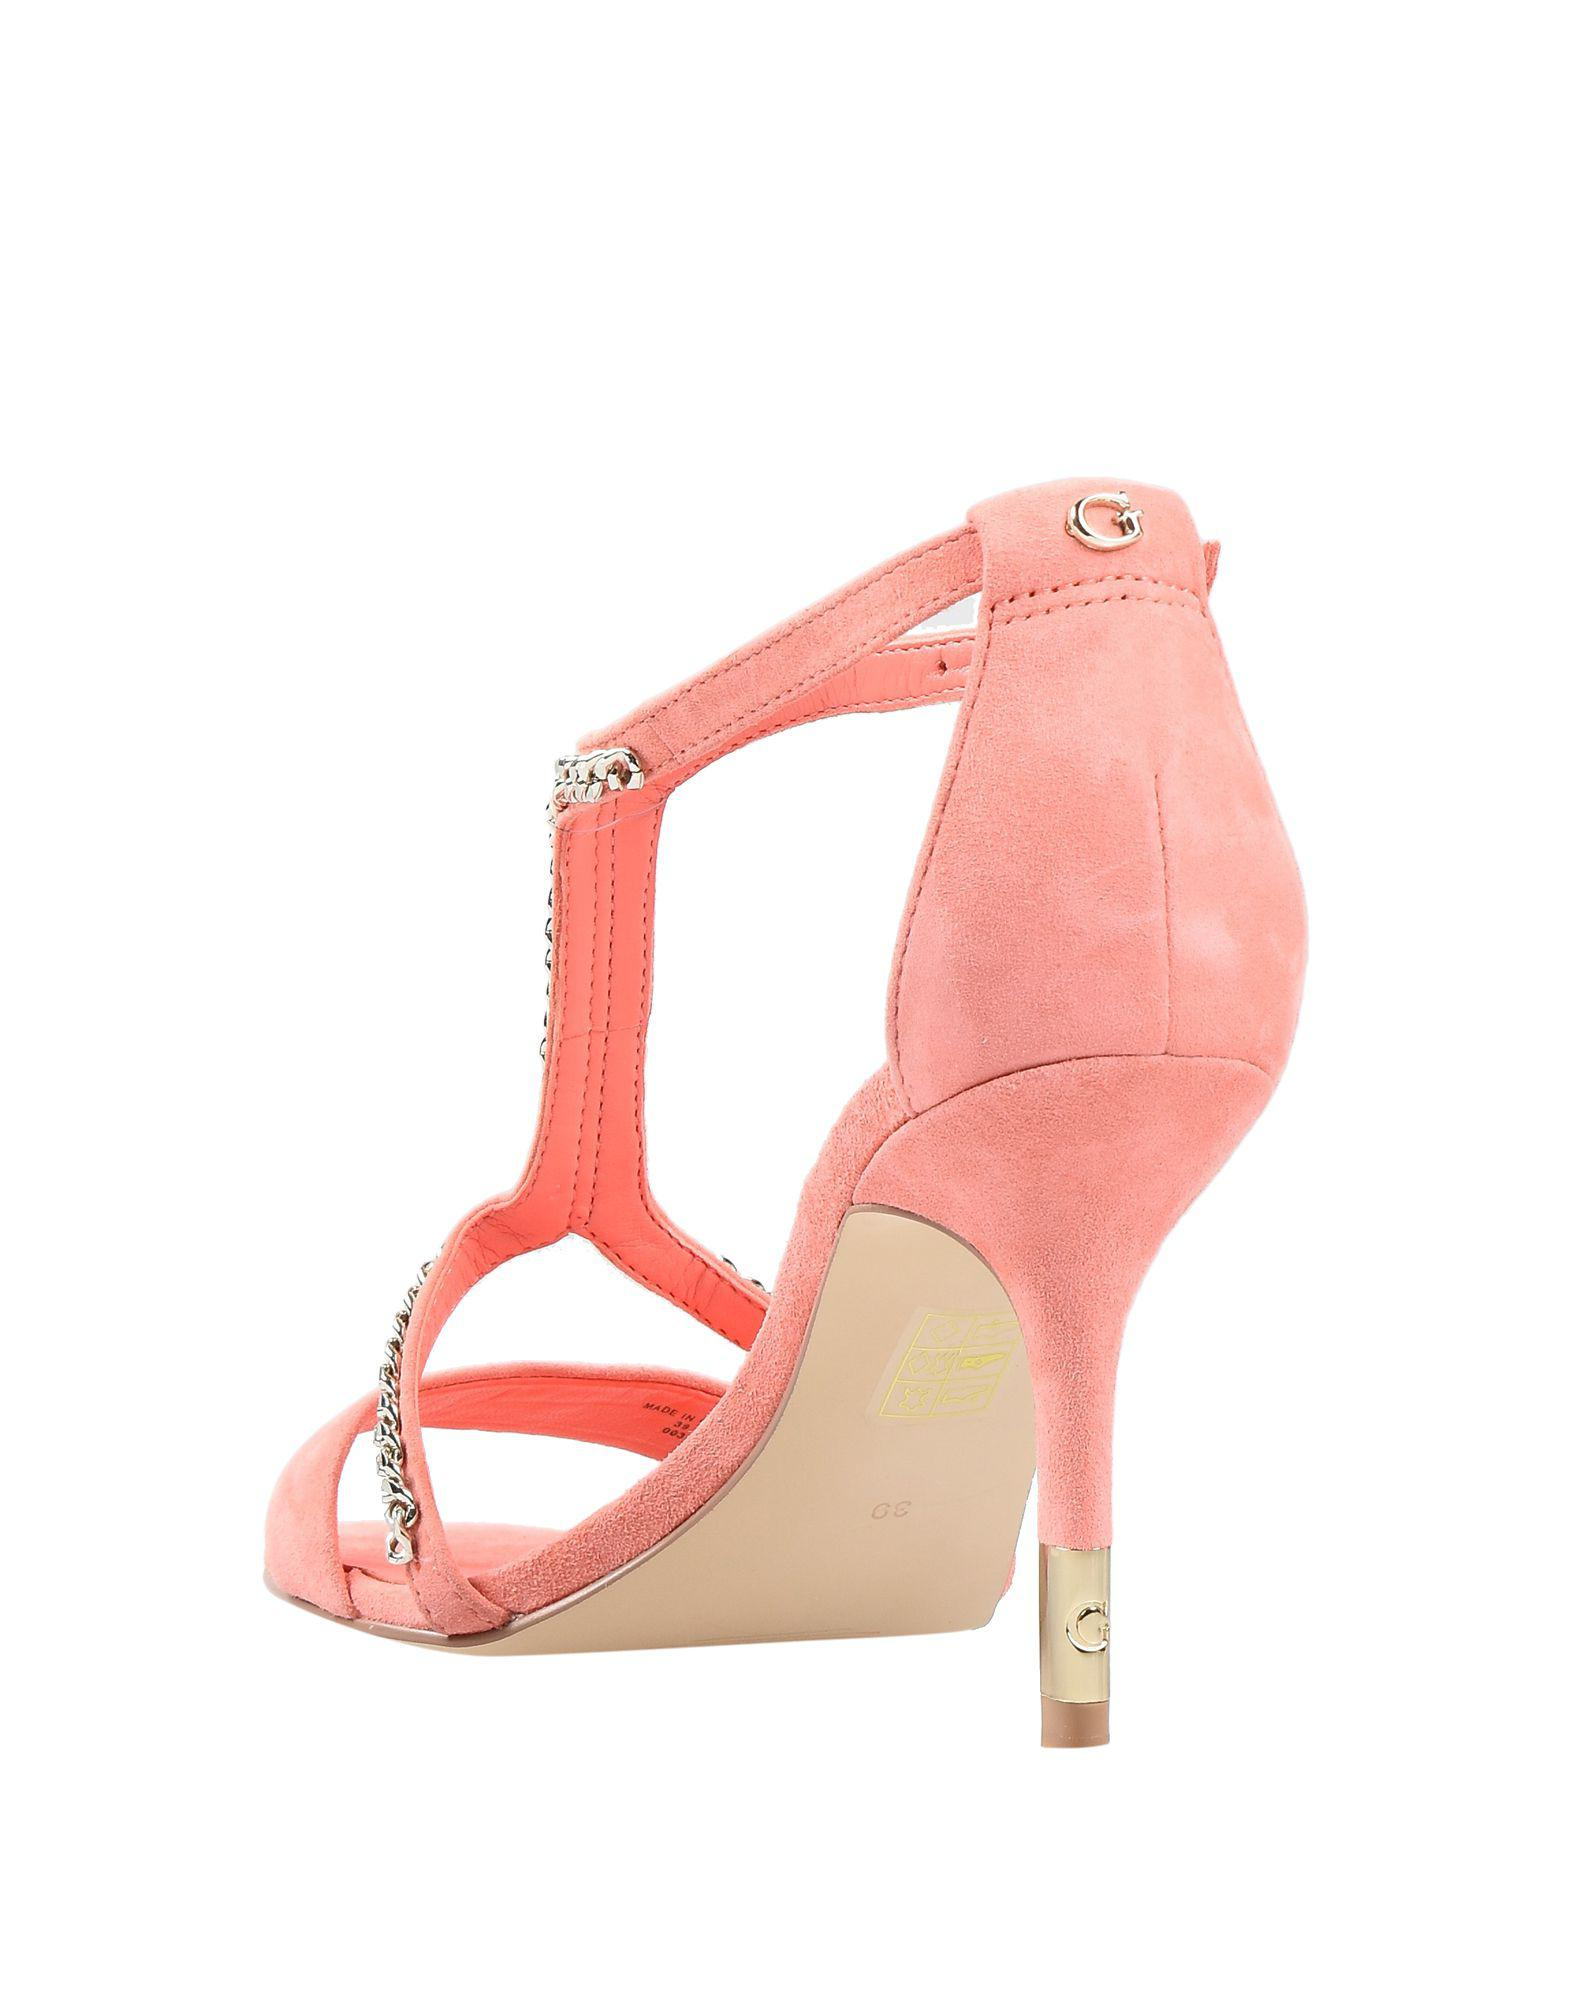 8fe59db761 Guess Sandals in Pink - Lyst